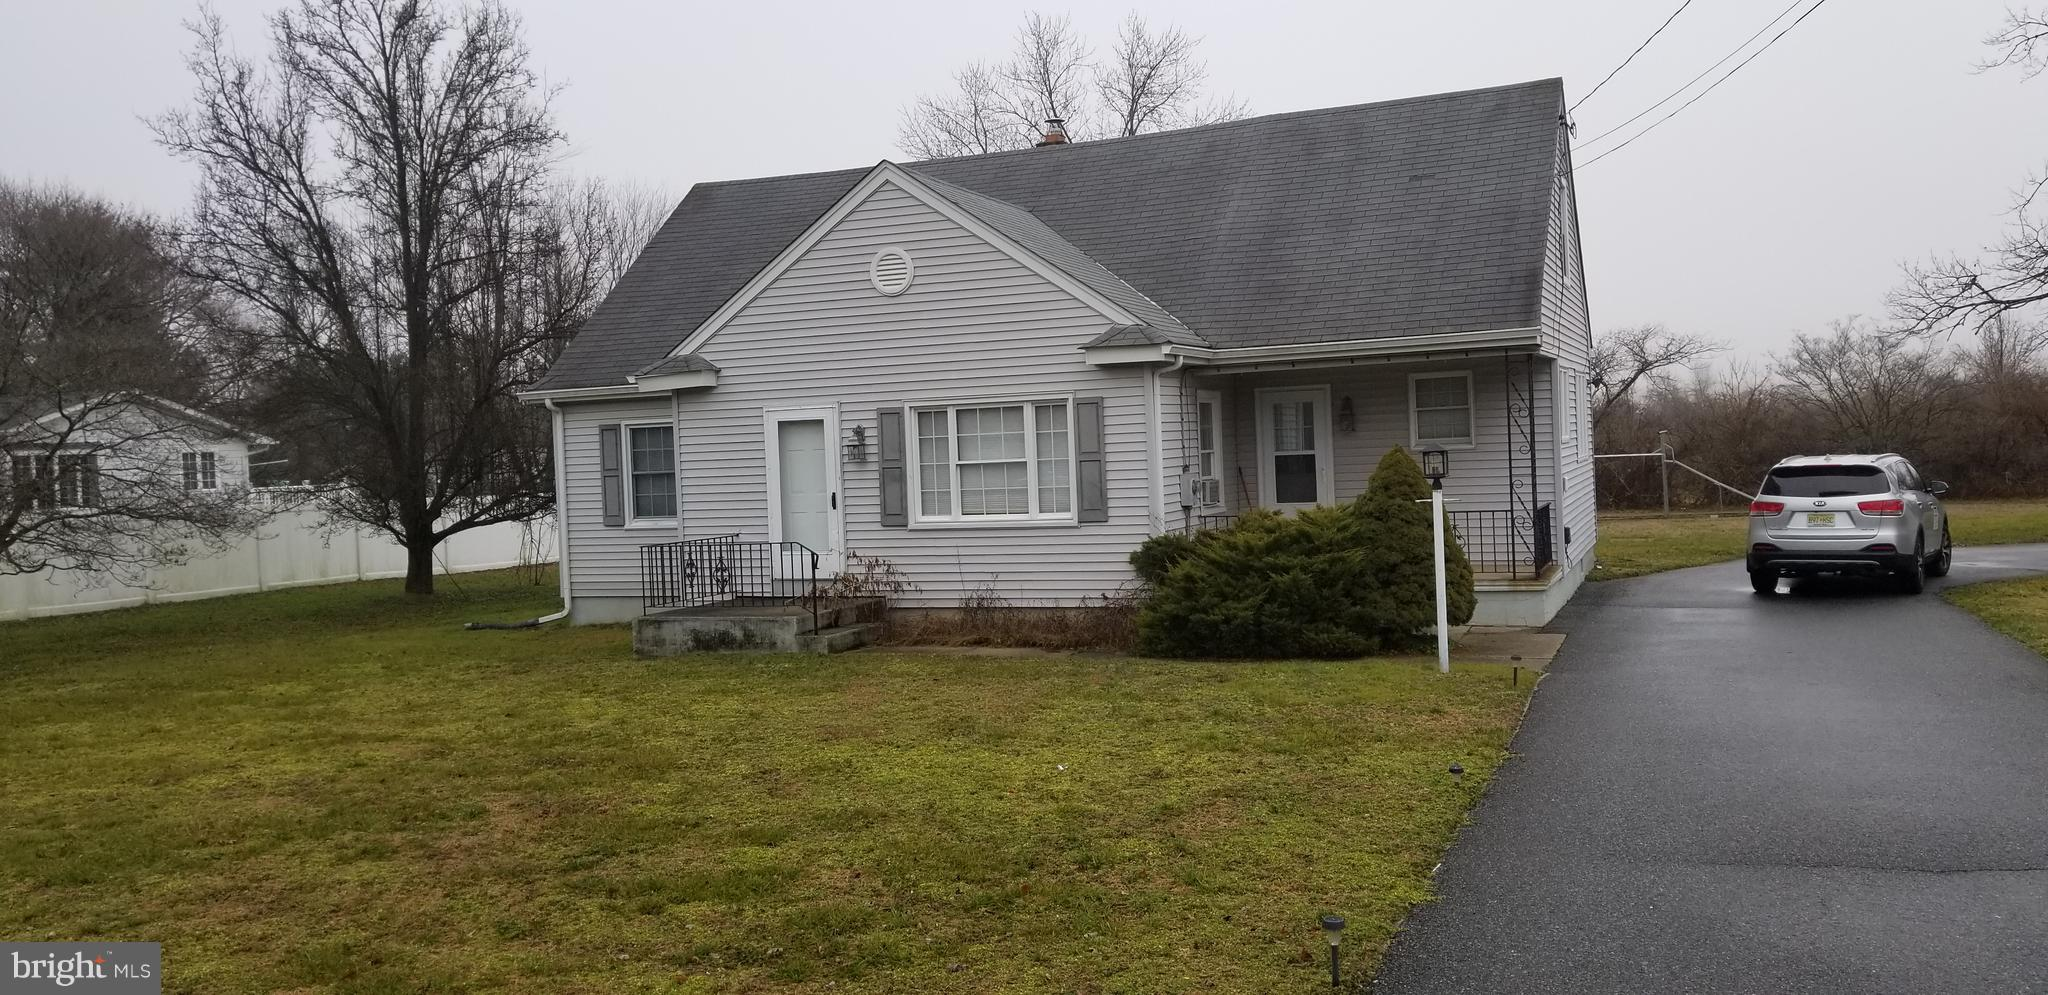 410 S ROUTE 73, WINSLOW, NJ 08095